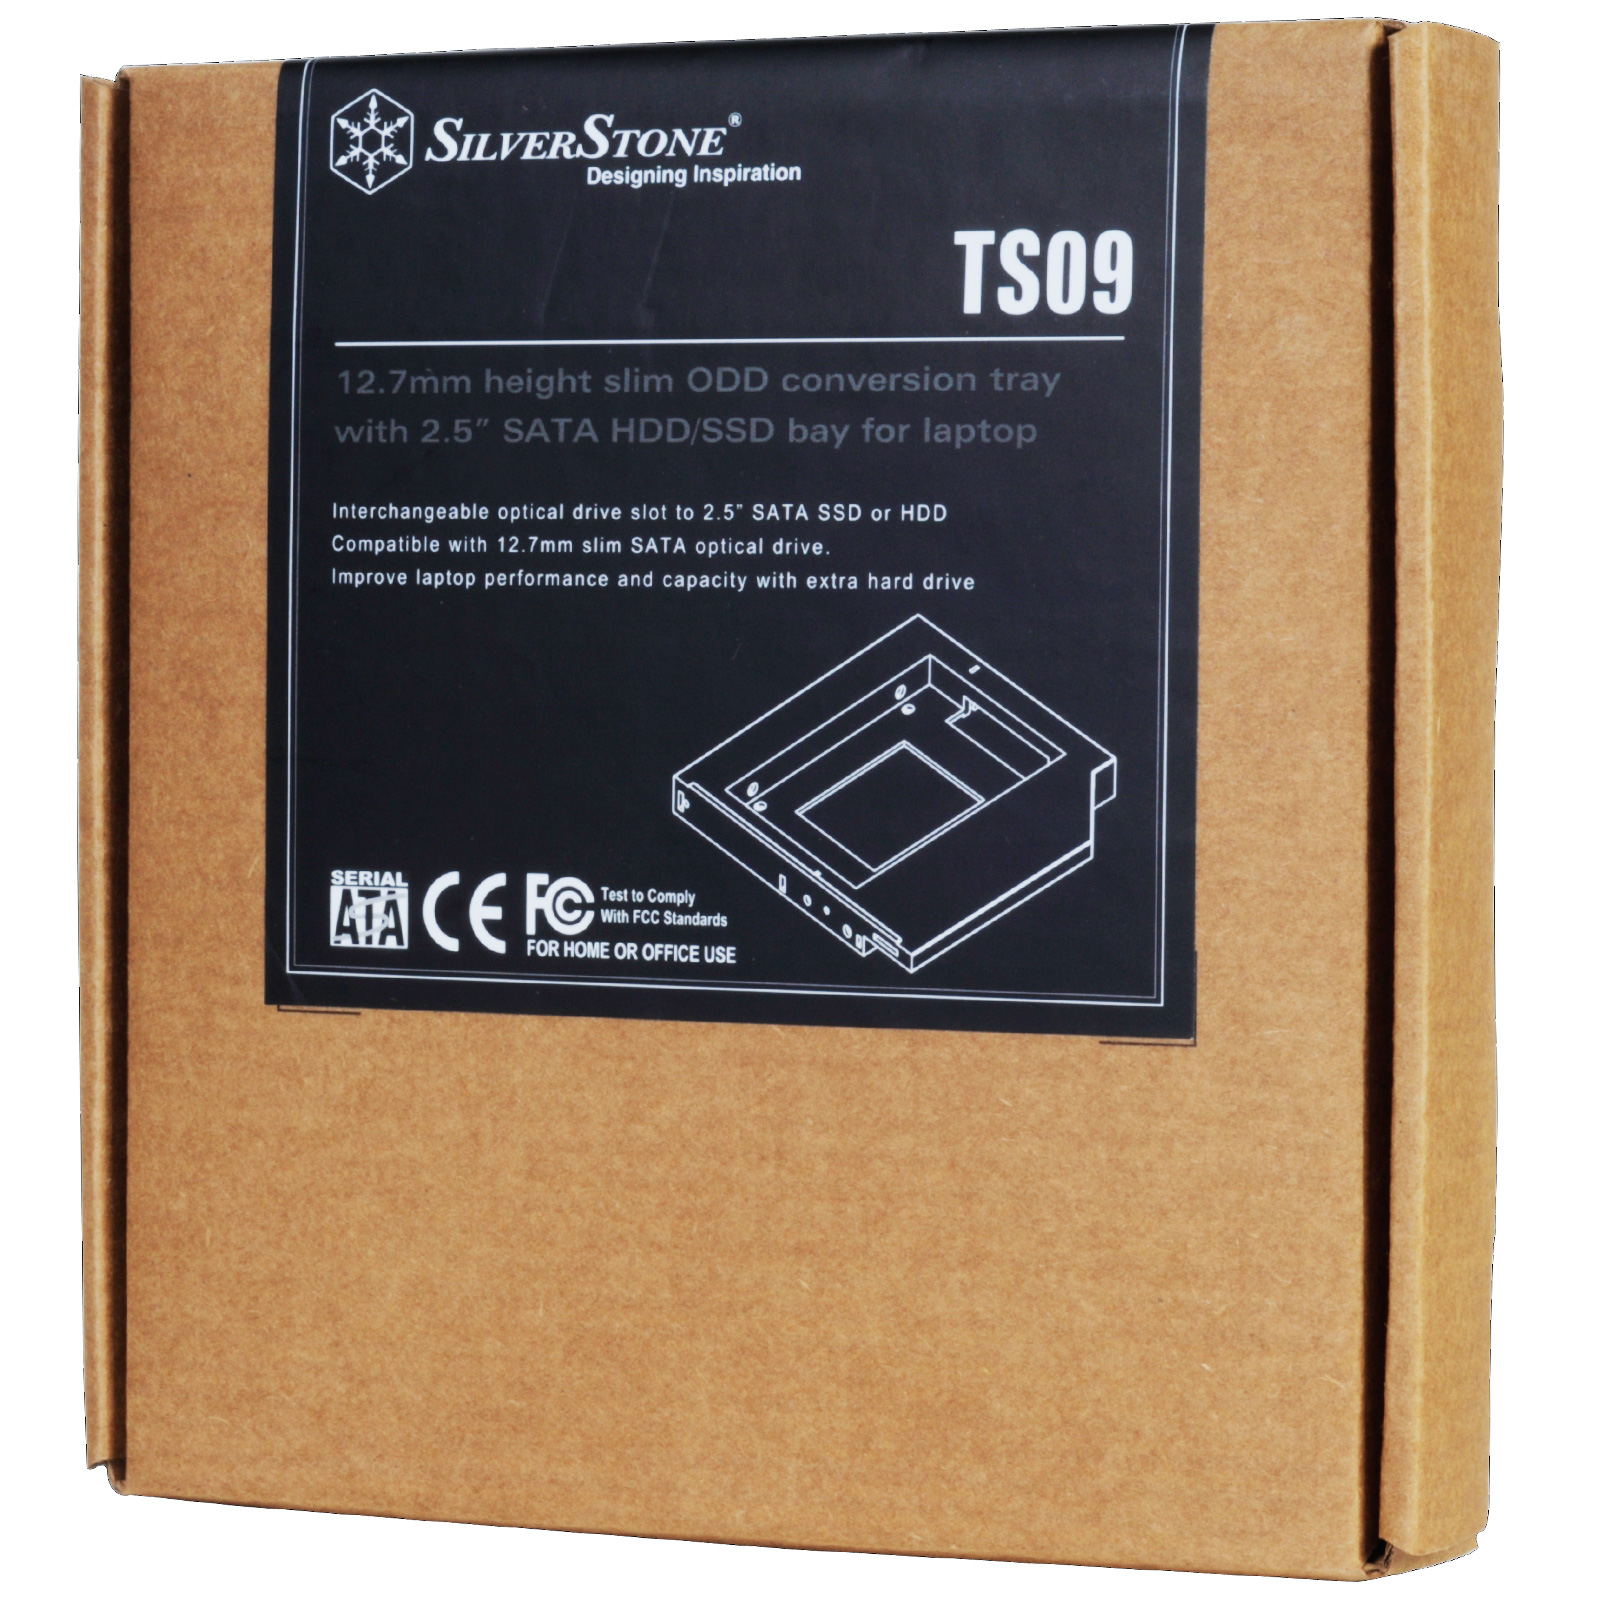 SilverStone TS09 ODD CONVERSION TRAY FOR LAPTOP 12.7 MM HEIGHT